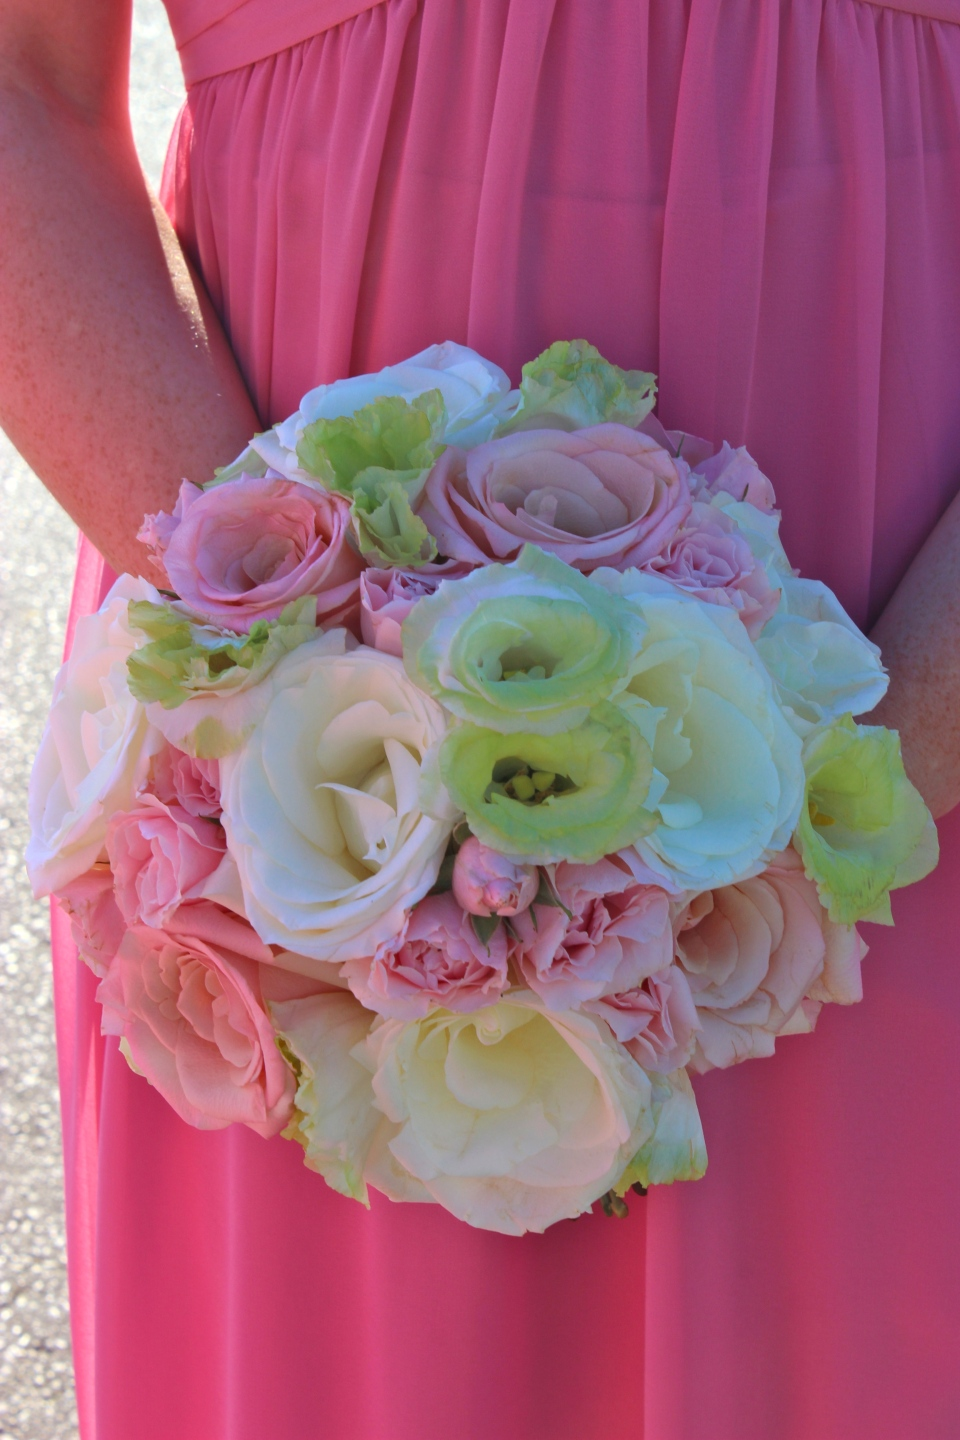 Pink, white and green bouquet of roses and lisianthus